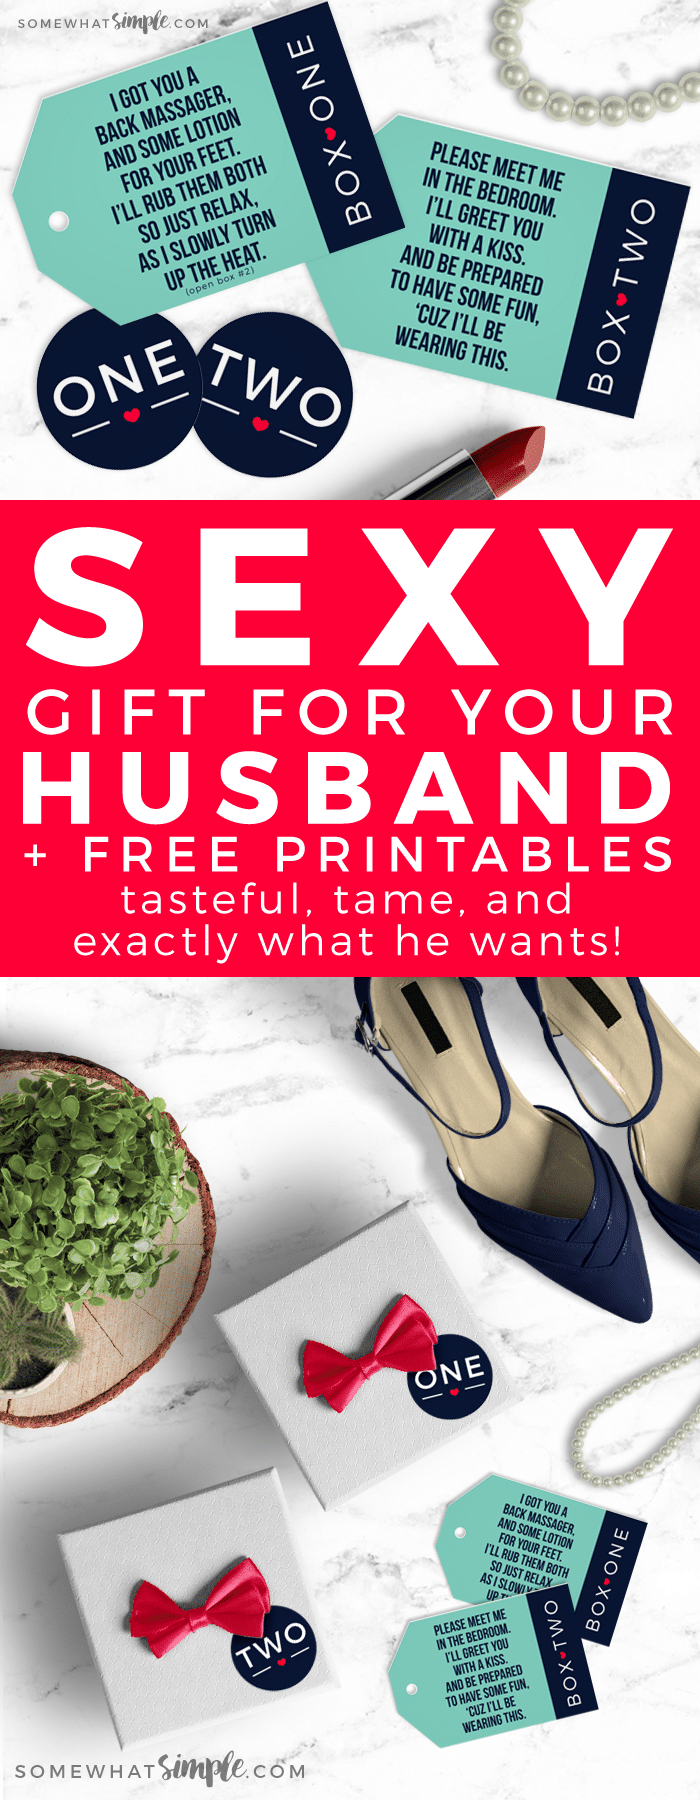 Sexy Gift for Your Husband - This sexy gift for your husband is perfect for any occasion and he's sure to love it! #FreePrintables